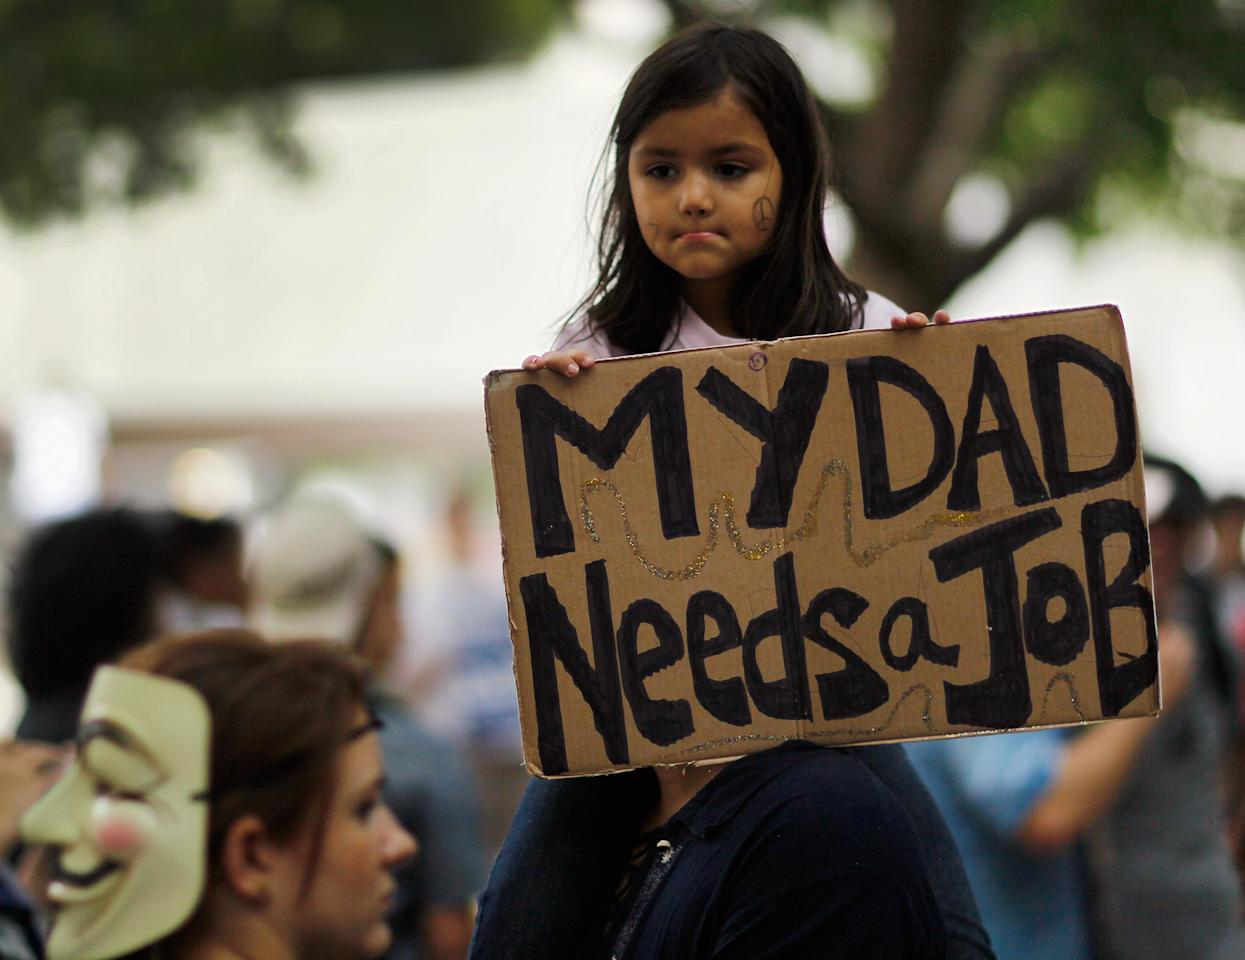 "MIAMI, FL - OCTOBER 15: Anabella Campuzano sits on the shoulders of her father, Camilo Campuzano as she holds a sign that reads,"" My Dad Needs a Job""' as they particpate in an Occupy Miami protest on October 15, 2011 in Miami, Florida. Thousands of people are taking to the streets in cities across the world today in demonstrations inspired by the 'Occupy Wall Street' protests in New York City, an estimated 1,000 people showed up to participate in the Miami protest.  (Photo by Joe Raedle/Getty Images)"